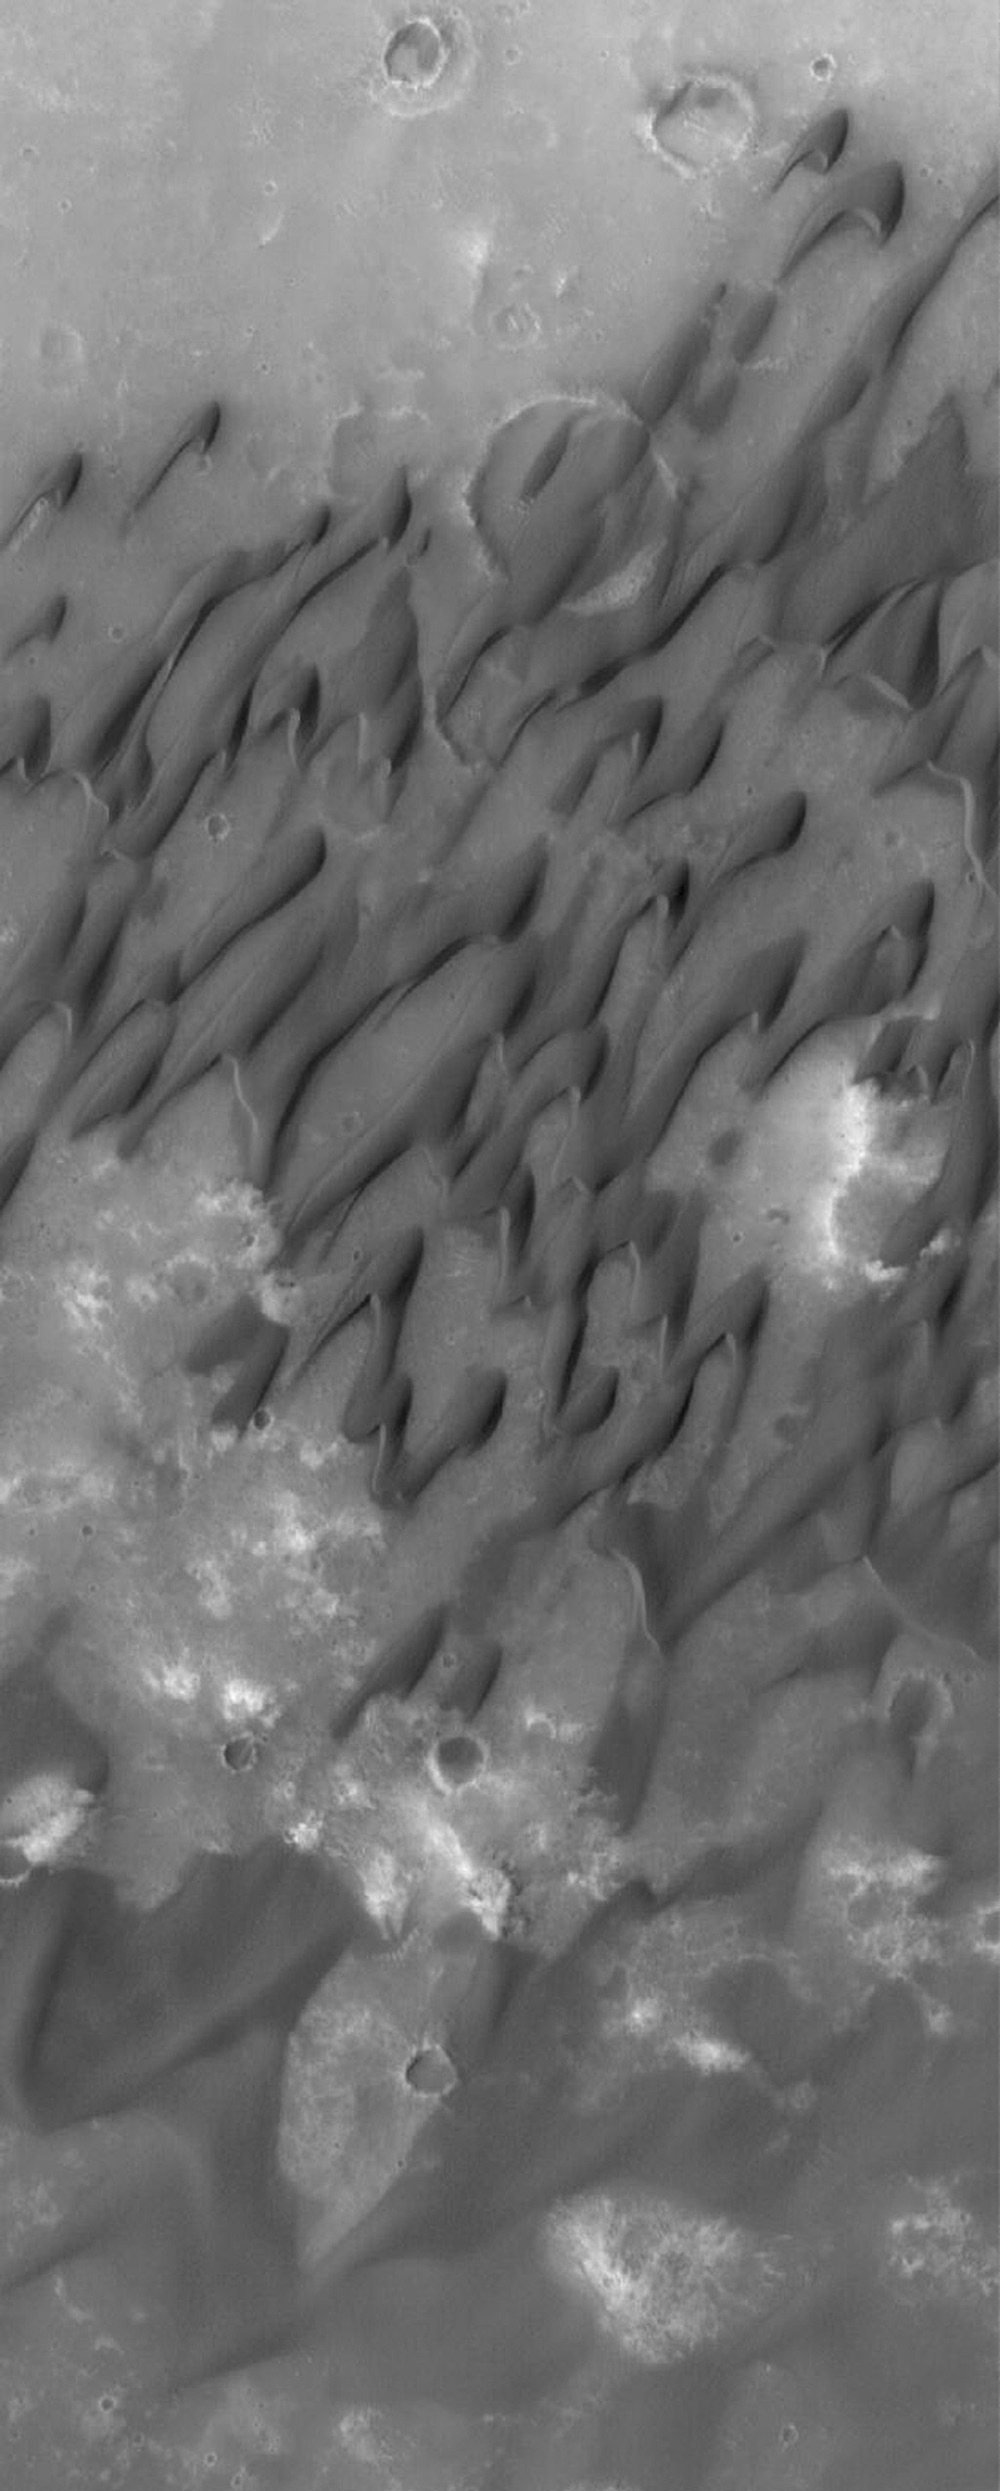 NASA's Mars Global Surveyor shows dark-toned sand dunes on the floor of the large martian impact crater, Herschel, located in the Terra Cimmeria region of Mars.